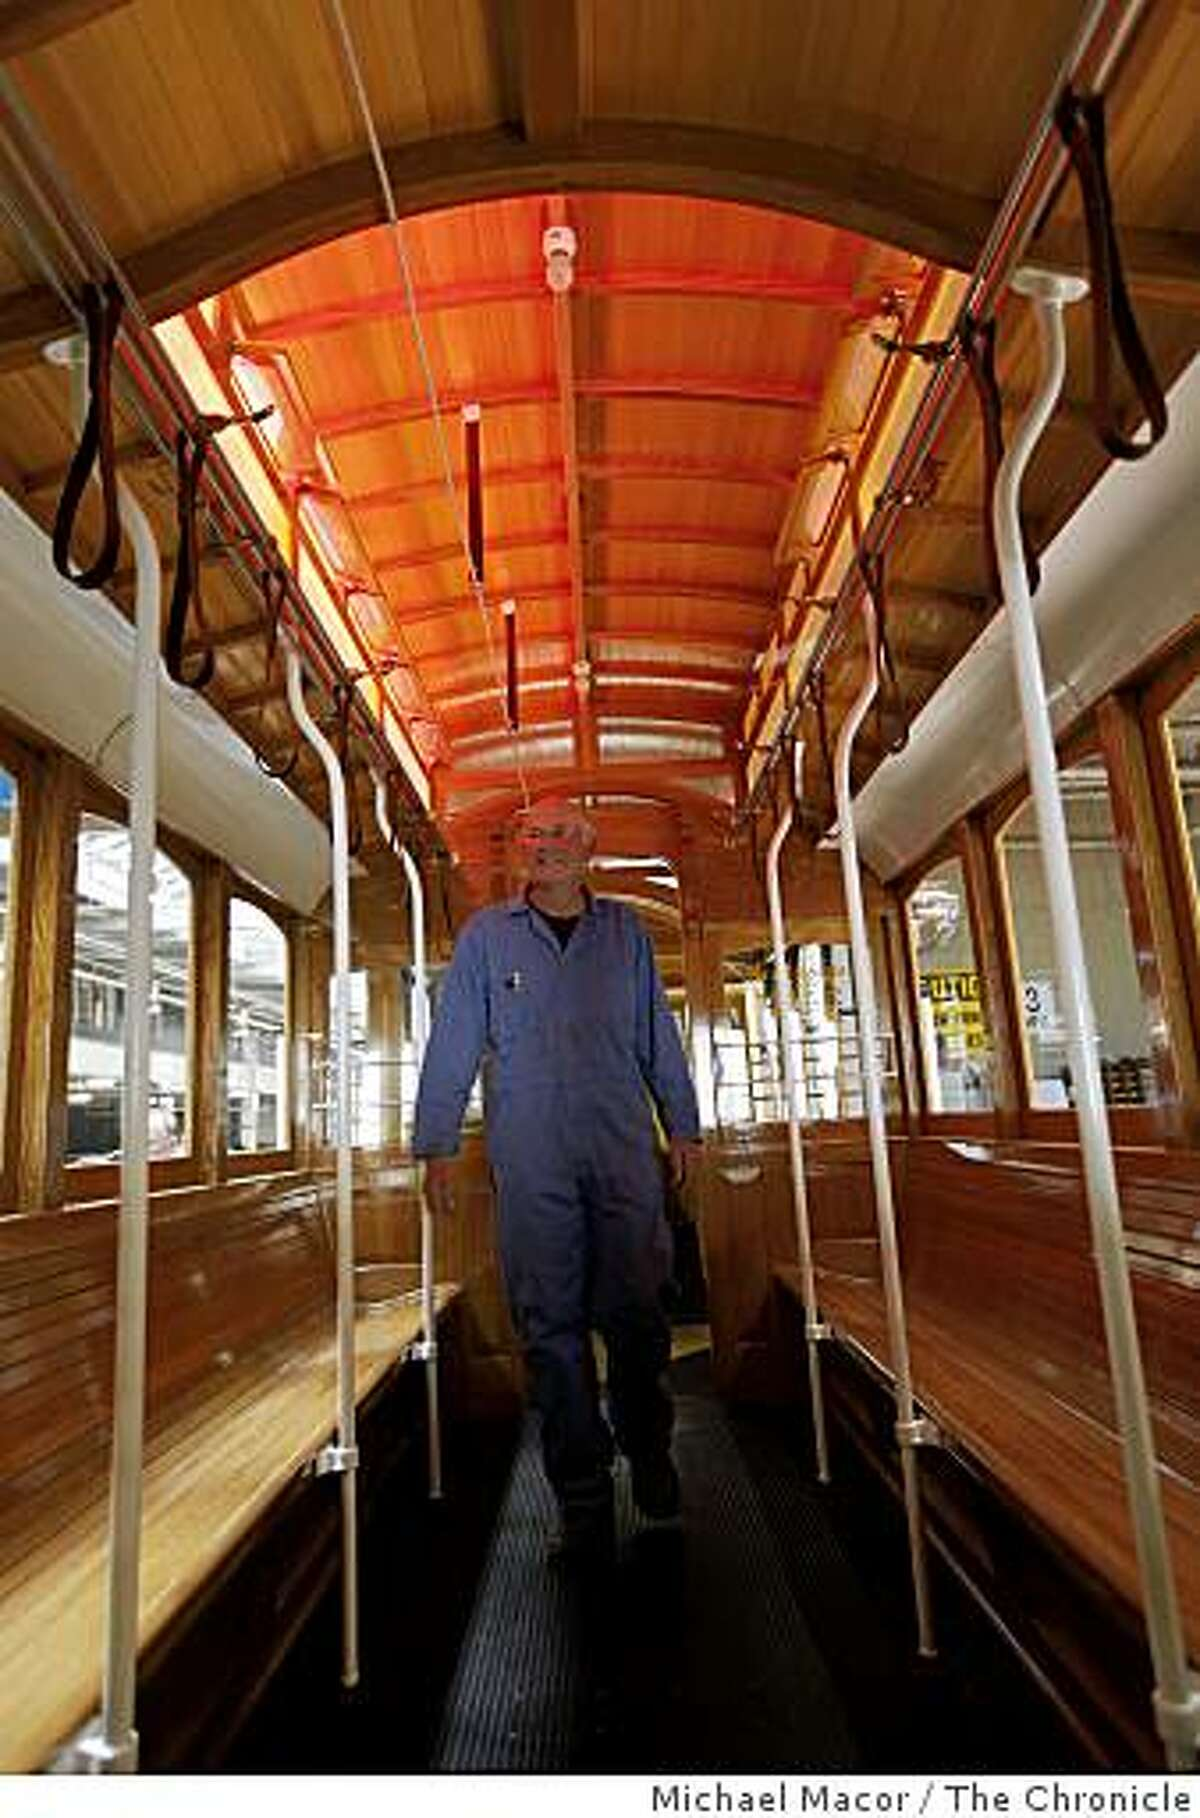 Ken Russi, a painter who worked on the car, walks through cable car 15 makes which makes it's inaugural run on Monday June 22 after 5 years of building the historic vehicle. The car waits at the cable car barn on Thursday June 18, 2009 in San Francisco, Calif.